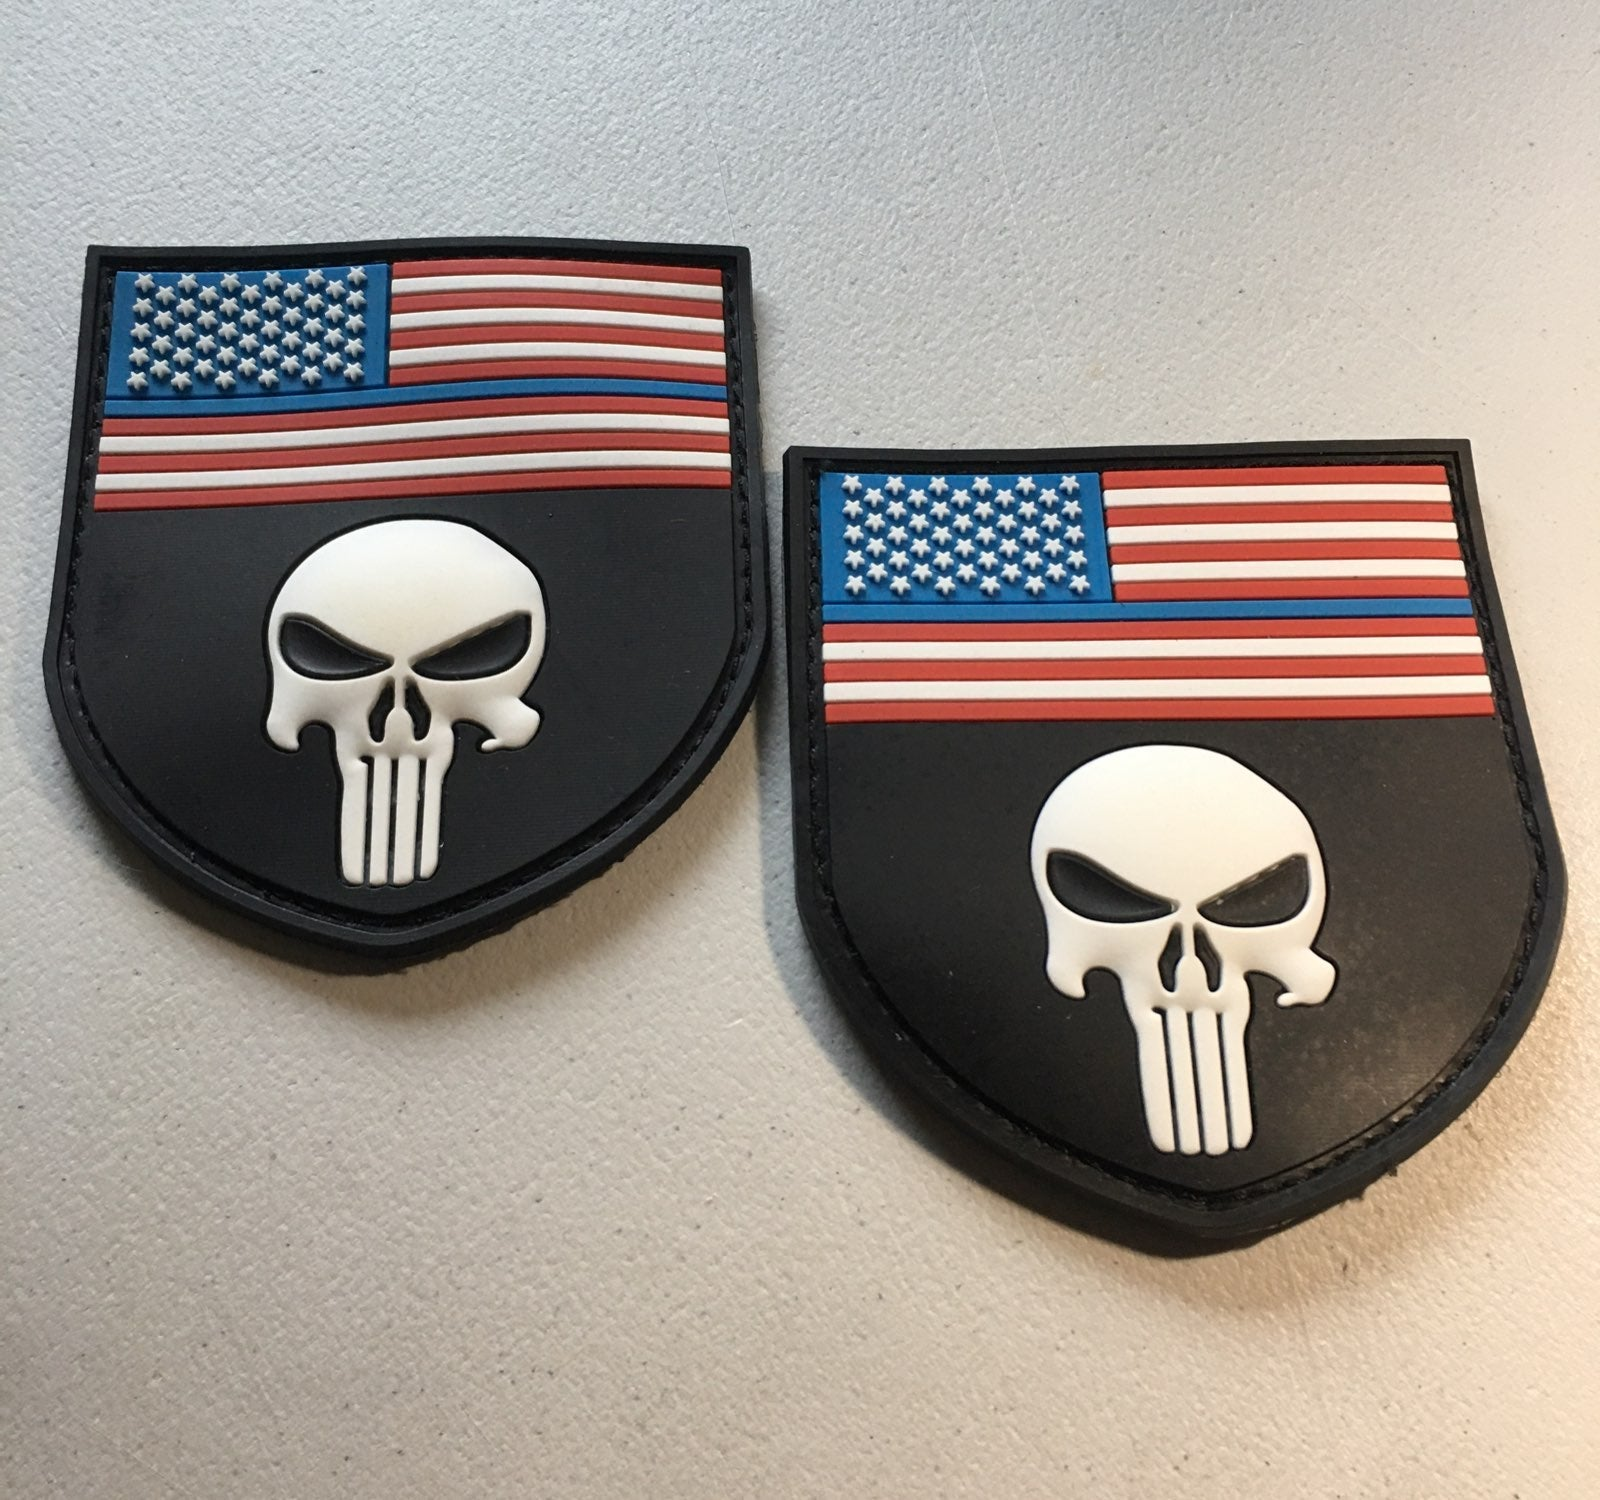 US MILITARY Punisher PVC Patches (2)